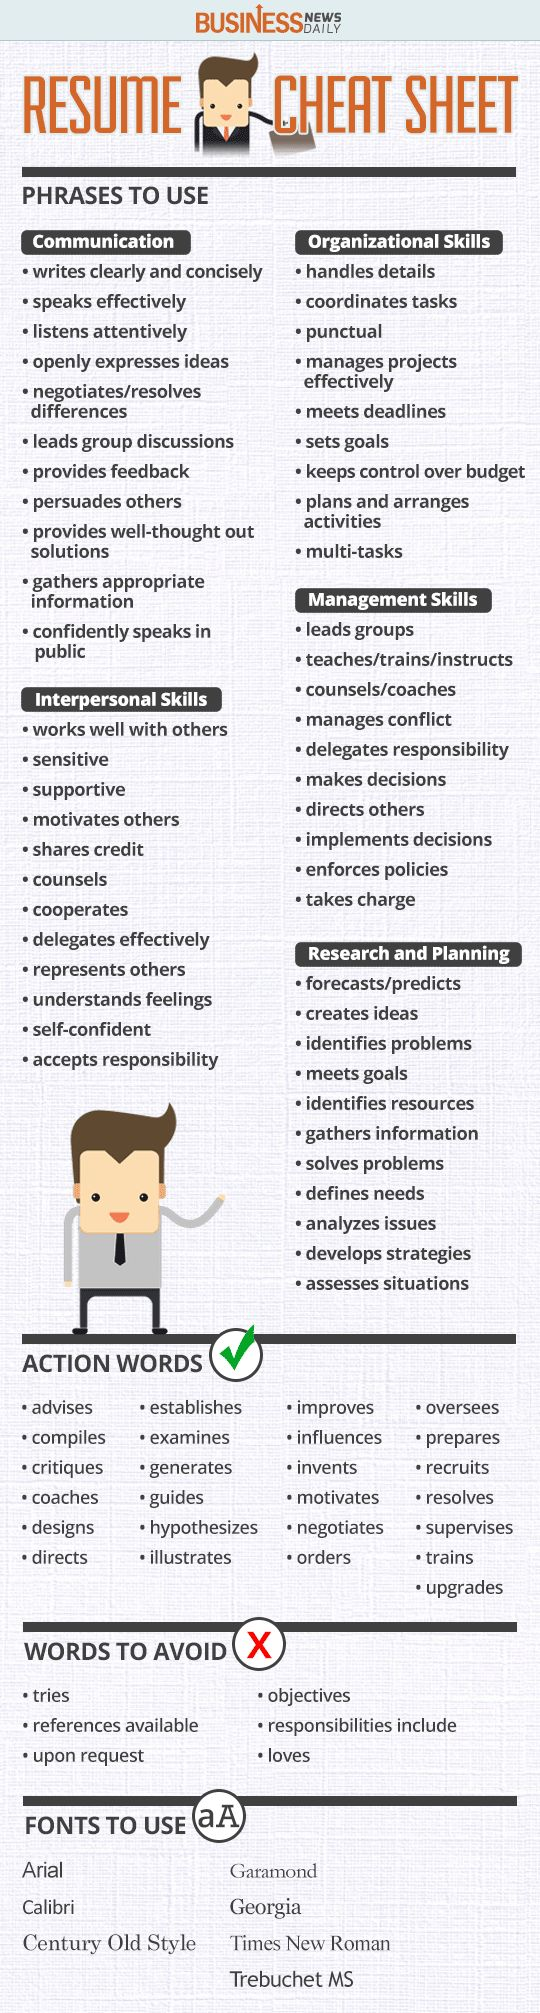 Opposenewapstandardsus  Remarkable  Ideas About Resume On Pinterest  Cv Format Resume Cv And  With Fetching Resume Cheat Sheet Infographic Andrews Almost Done With A Complete Unit On Employment Which With Archaic Resume Retail Also Pages Resume Templates Mac In Addition Optimal Resume Acc And Example Of Nursing Resume As Well As How To Make Your Own Resume Additionally Sales Associate Resume Objective From Pinterestcom With Opposenewapstandardsus  Fetching  Ideas About Resume On Pinterest  Cv Format Resume Cv And  With Archaic Resume Cheat Sheet Infographic Andrews Almost Done With A Complete Unit On Employment Which And Remarkable Resume Retail Also Pages Resume Templates Mac In Addition Optimal Resume Acc From Pinterestcom